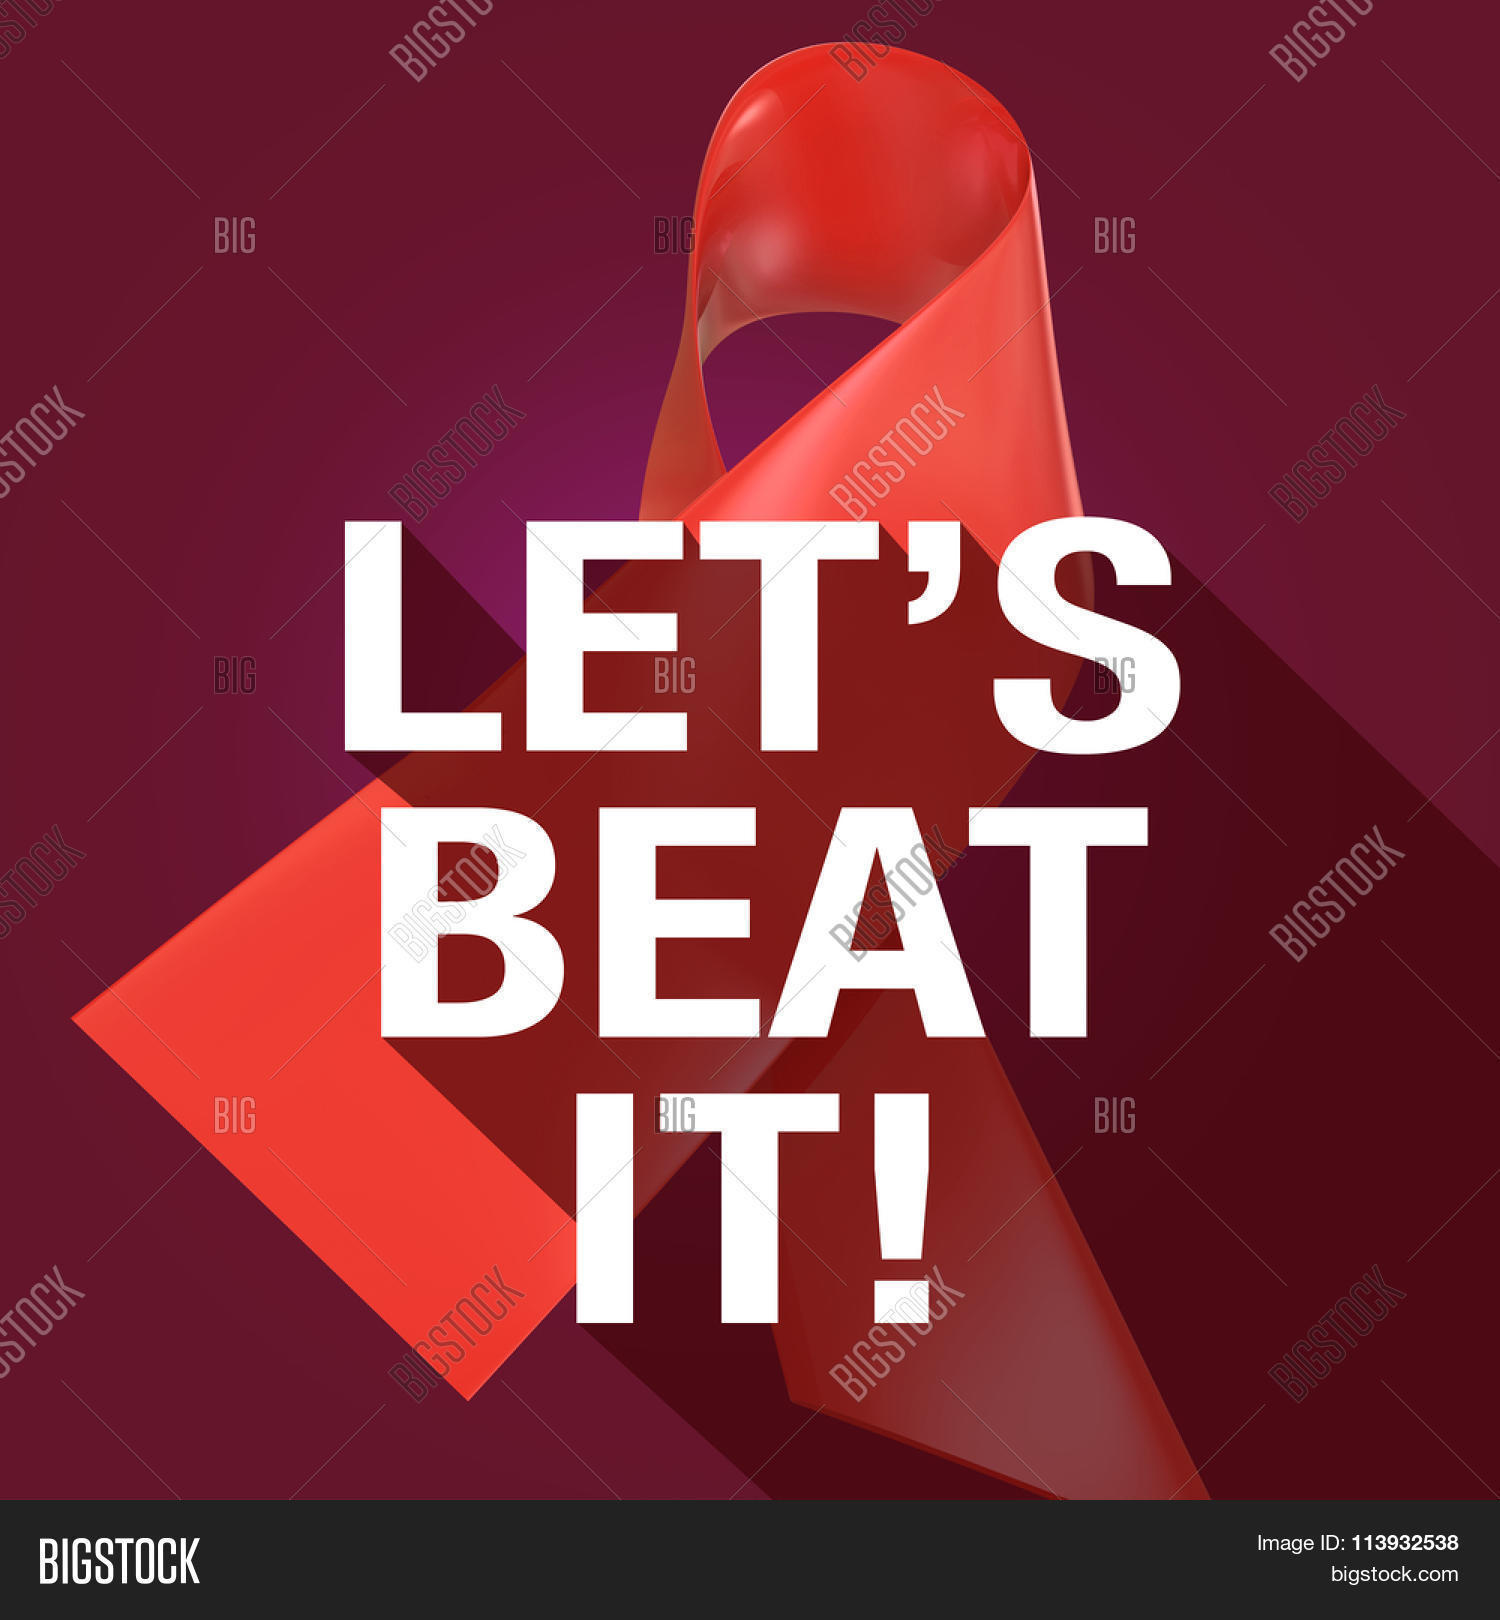 Lets Beat Words On Image Photo Free Trial Bigstock